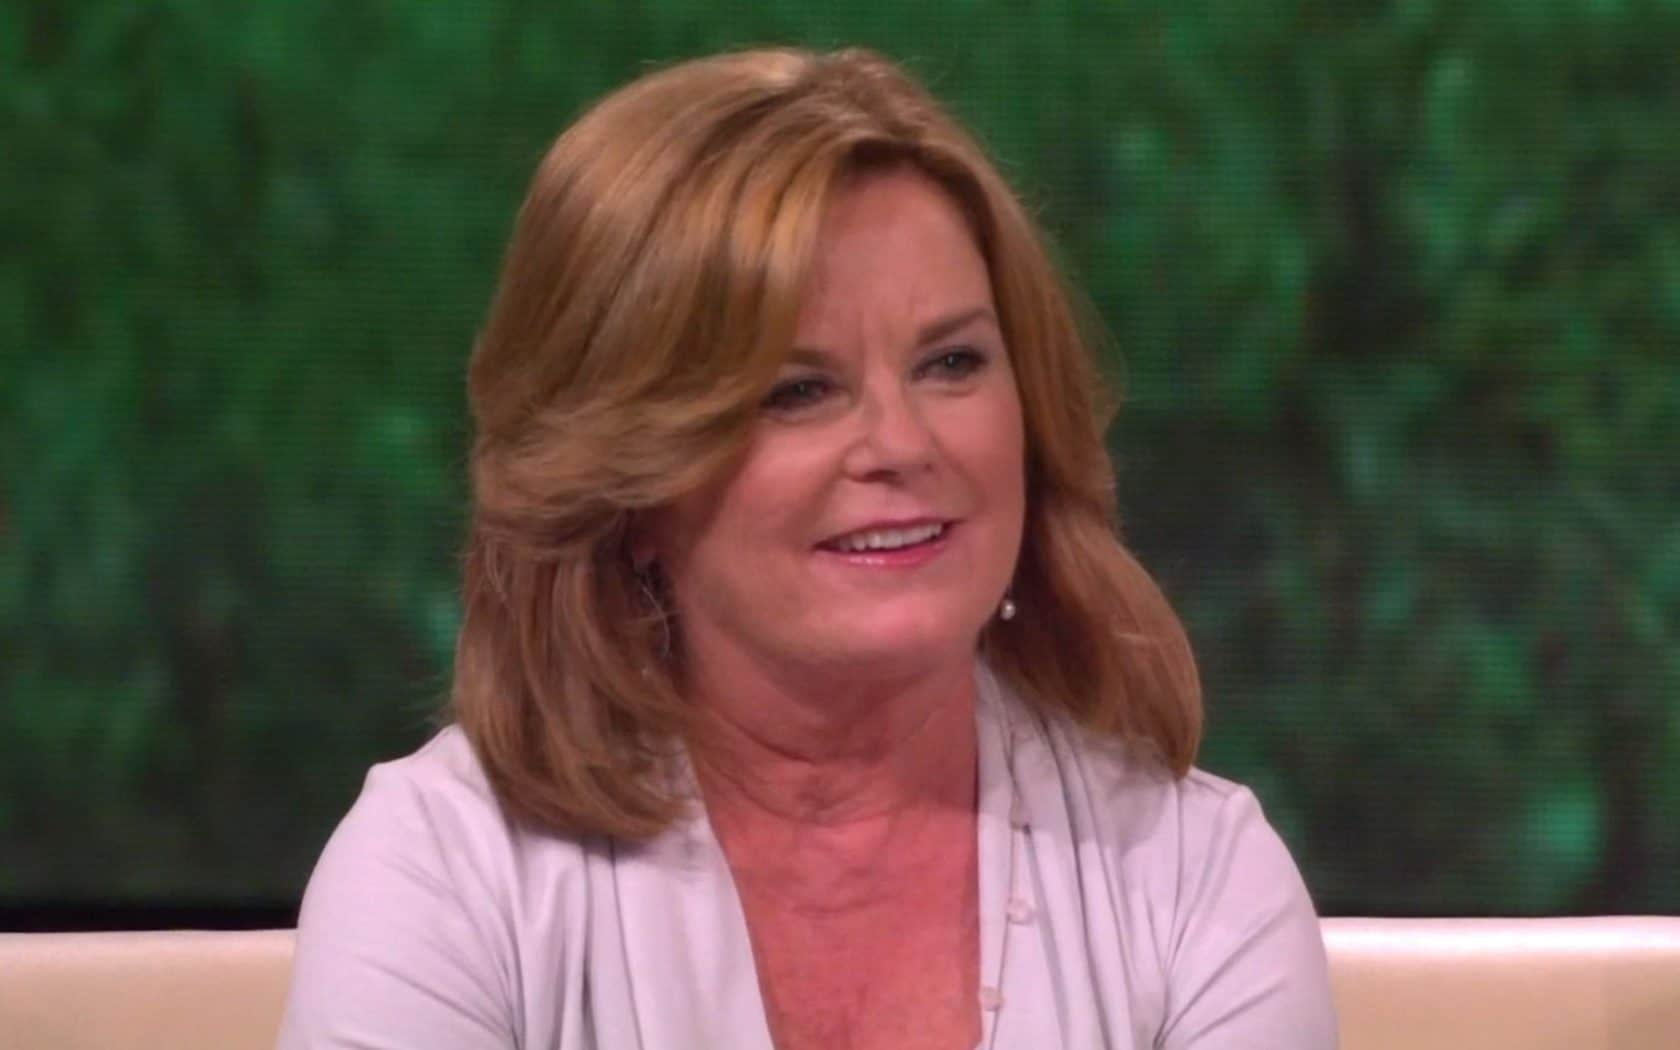 The Sound of Music star Heather Menzies-Urich dies aged 68